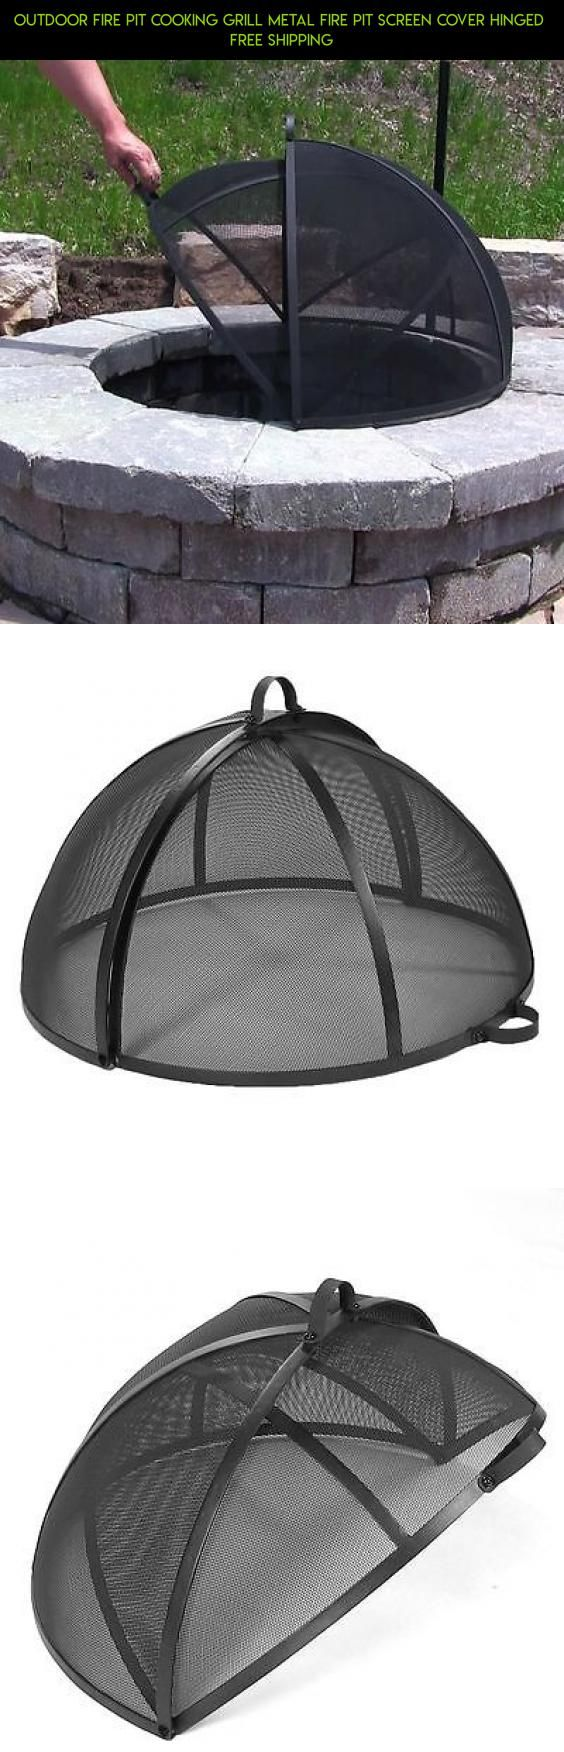 Outdoor Fire Pit Cooking Grill Metal Fire Pit Screen Cover Hinged  FREE SHIPPING #racing #products #fpv #kit #plans #shopping #drone #camera #gadgets #tech #technology #fire #outdoor #parts #cooking #pit